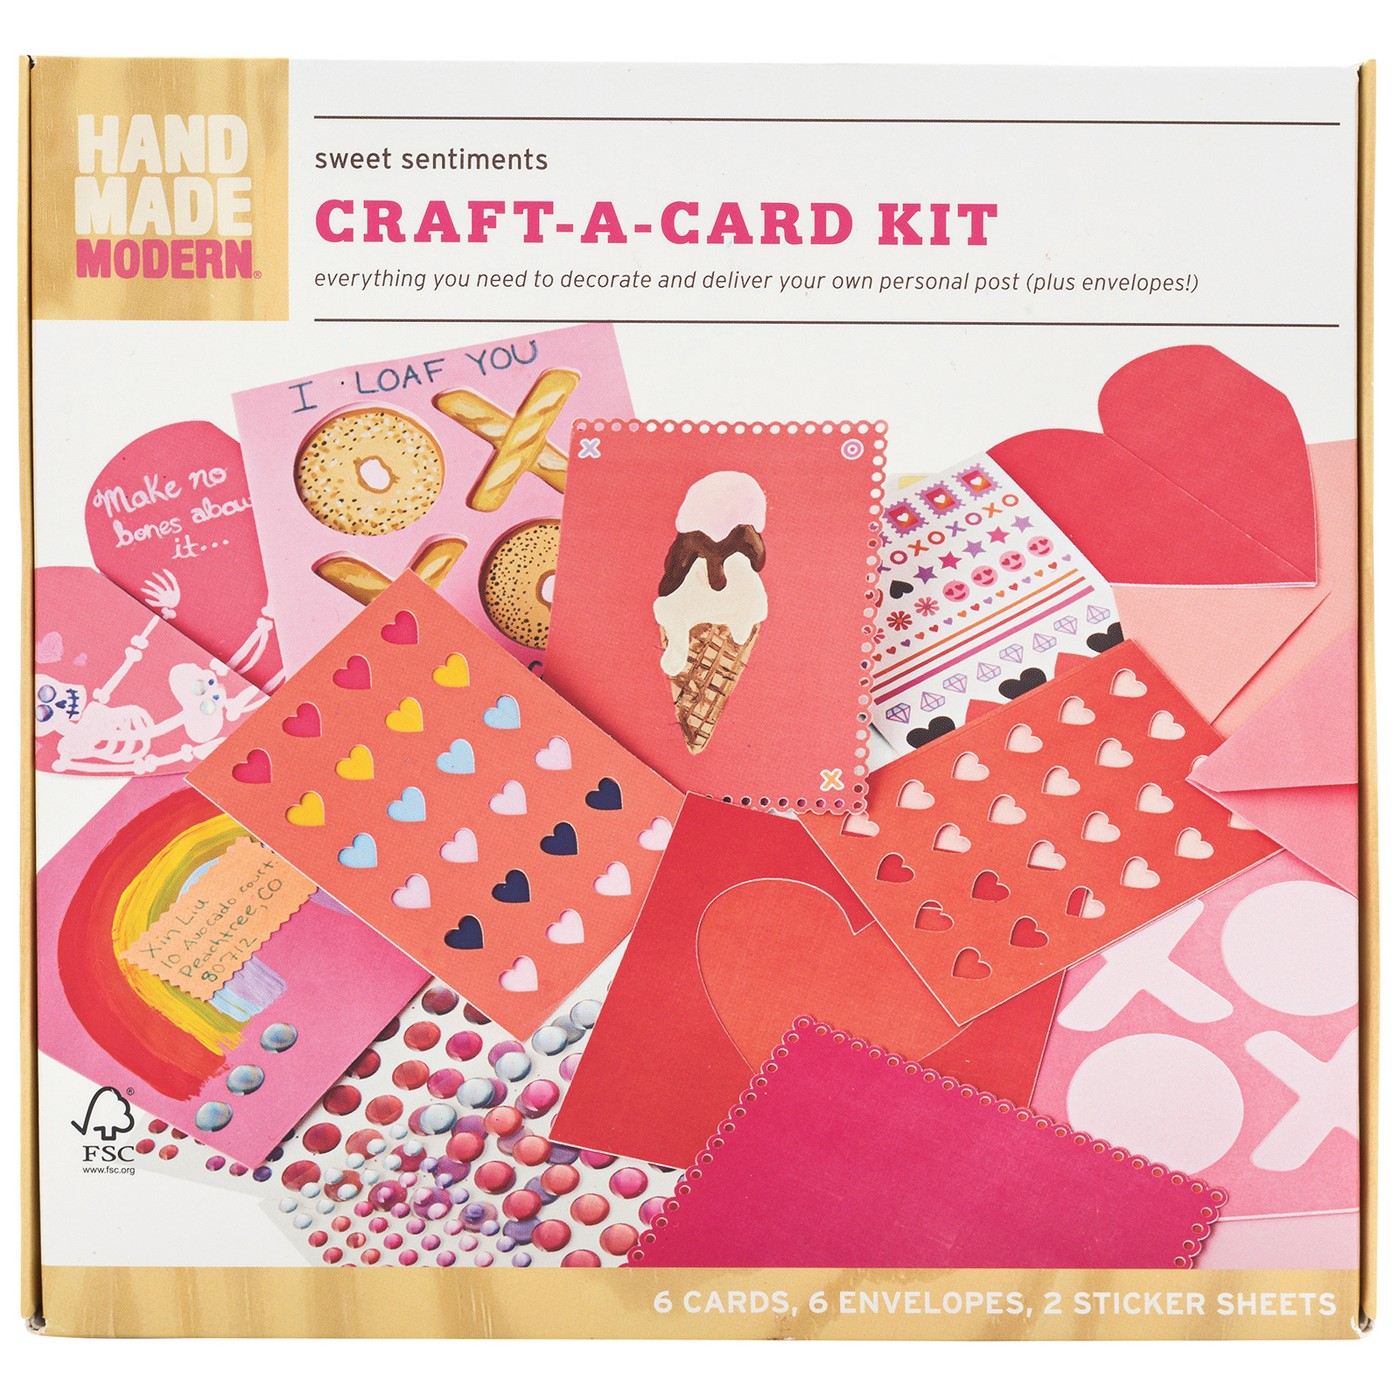 Hand Made Modern 14ct Craft-A-Card Kit - image 1 of 3